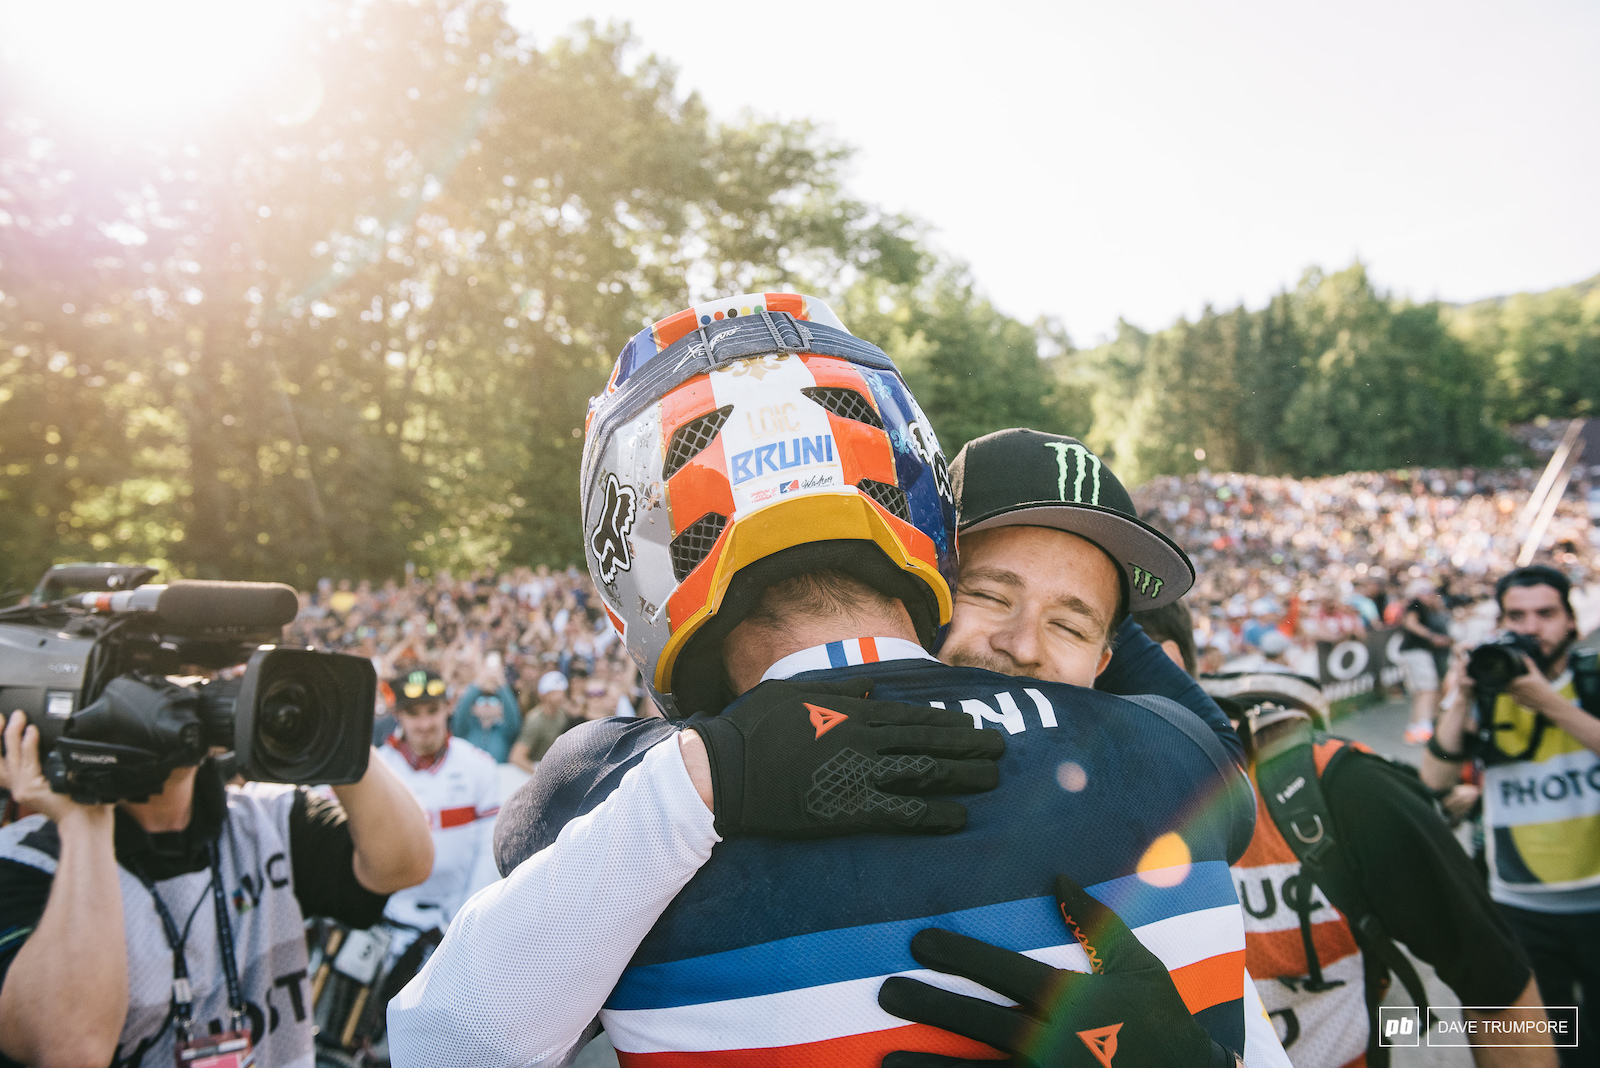 Loic Bruni and Trot Brosnan after taking gold and silver